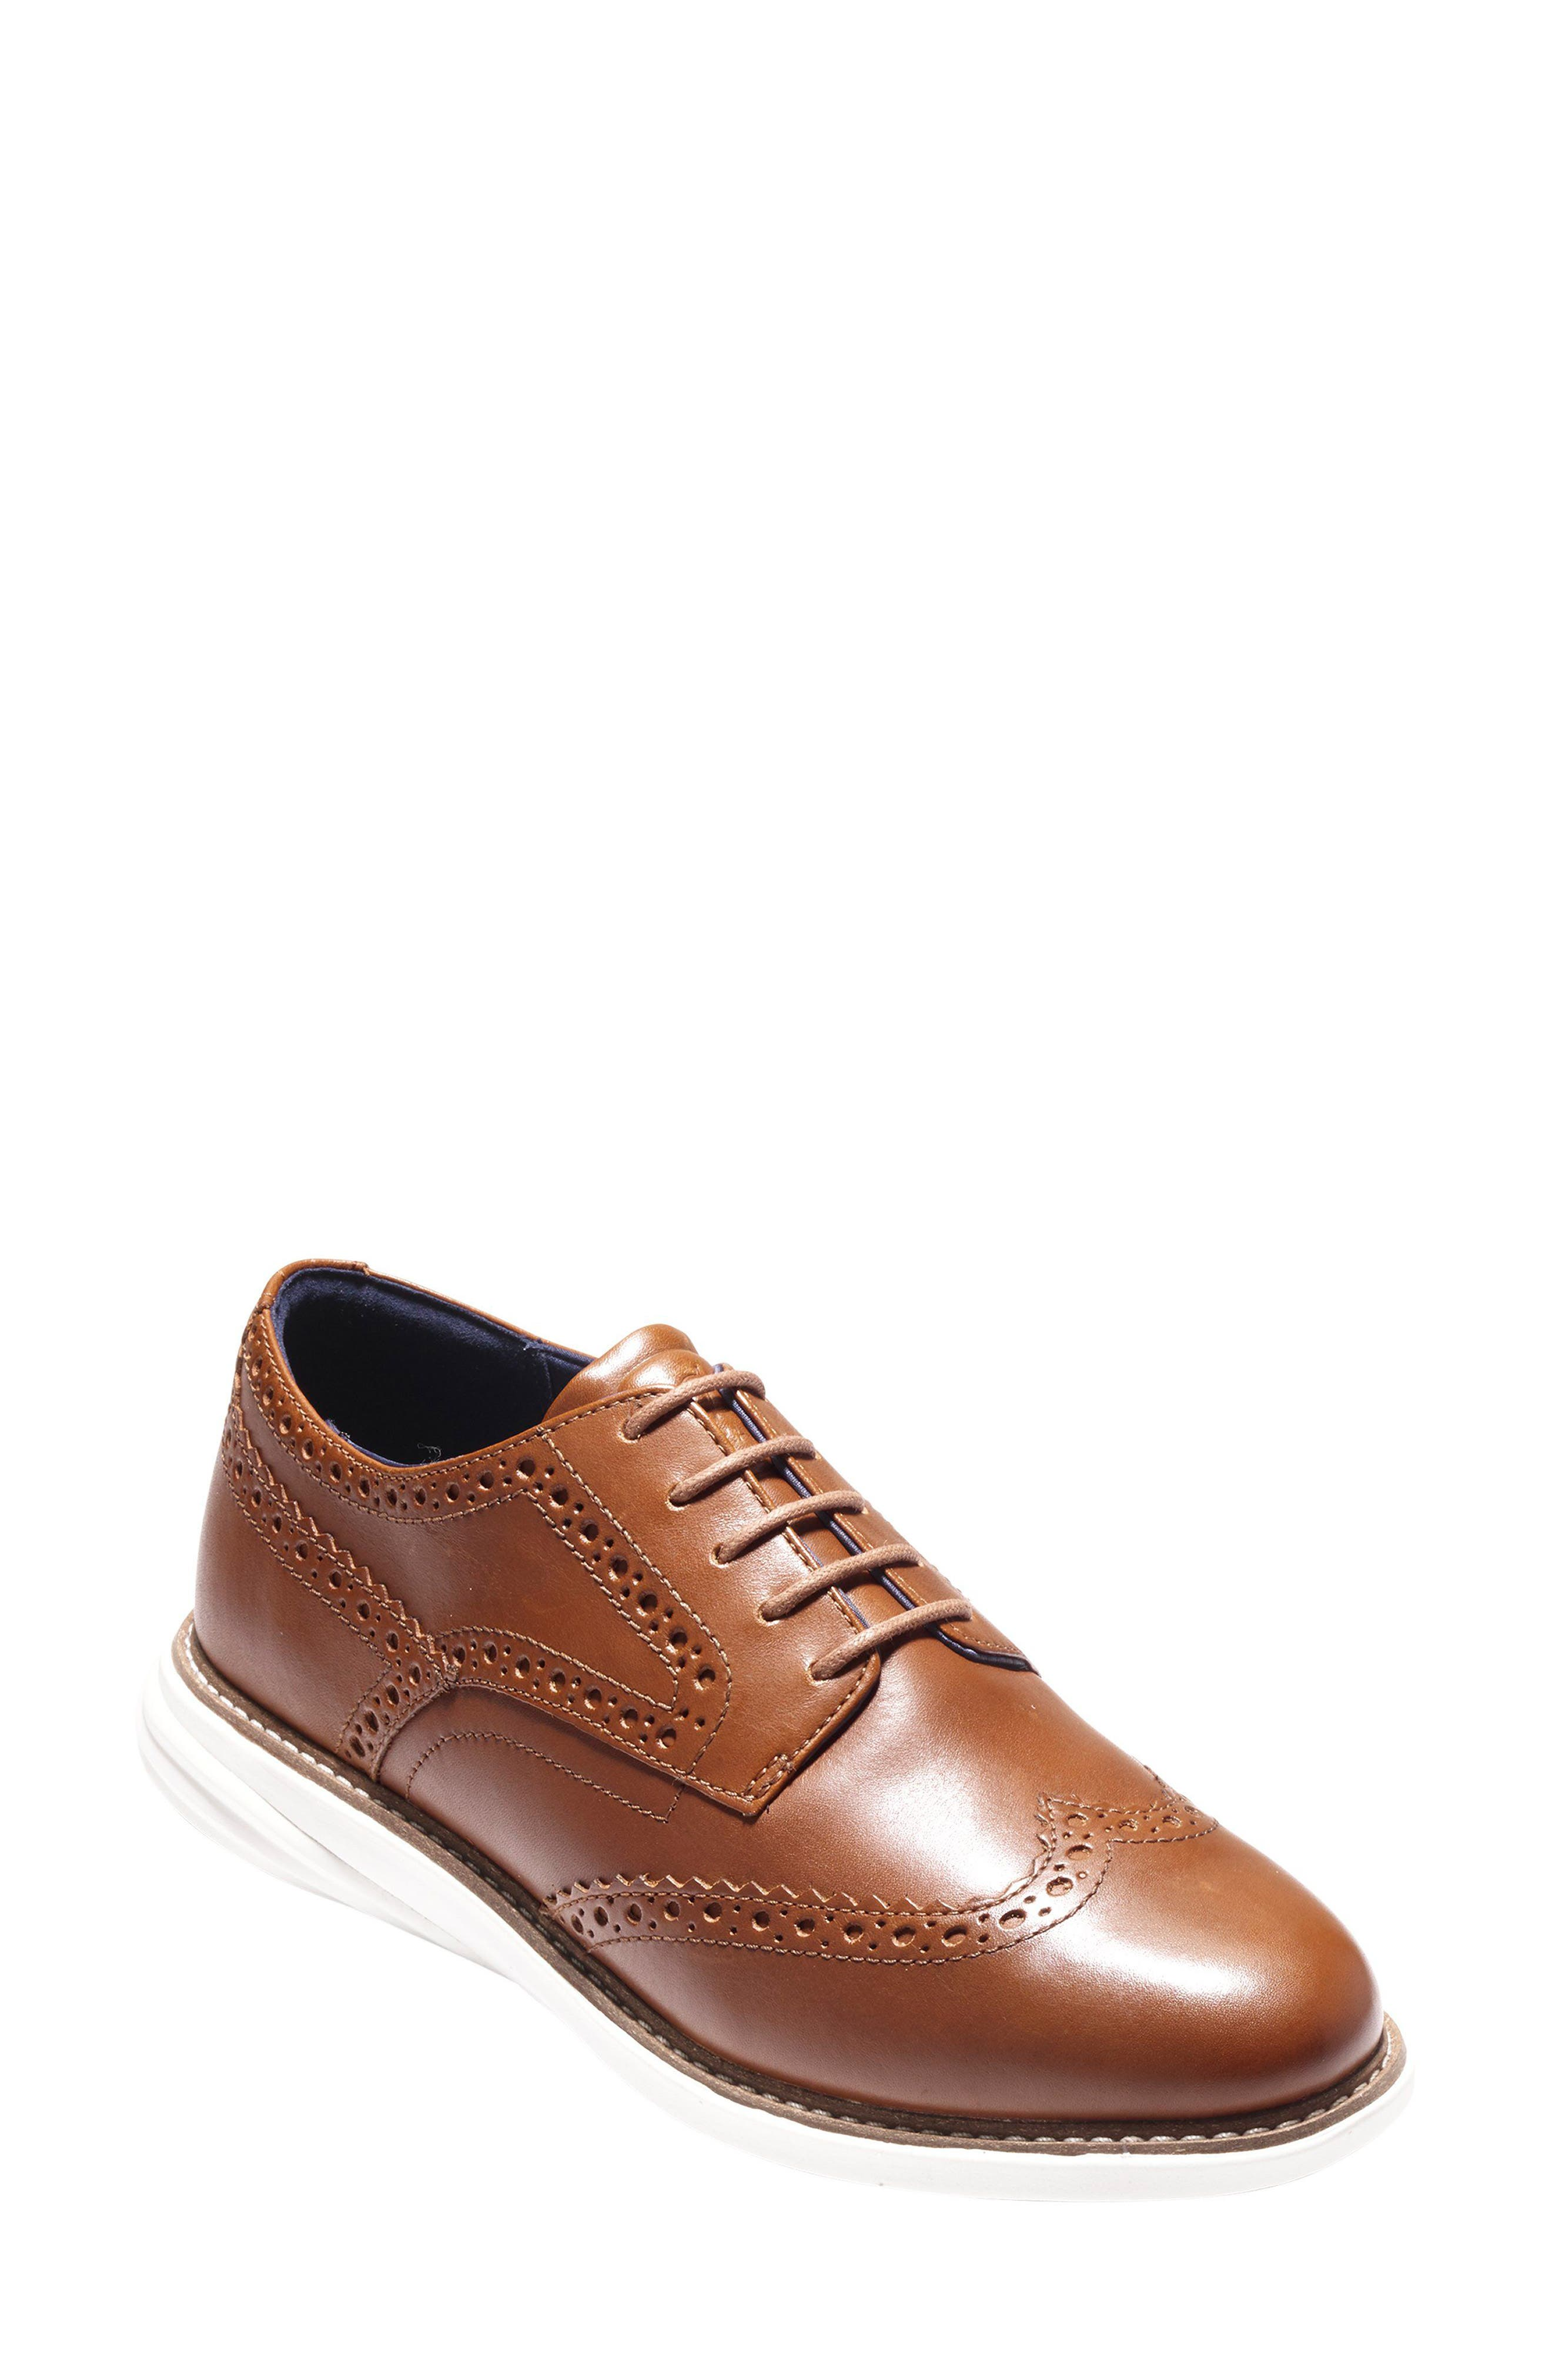 Grandevolution Shortwing Oxford Sneaker,                             Main thumbnail 1, color,                             WOODBURY LEATHER